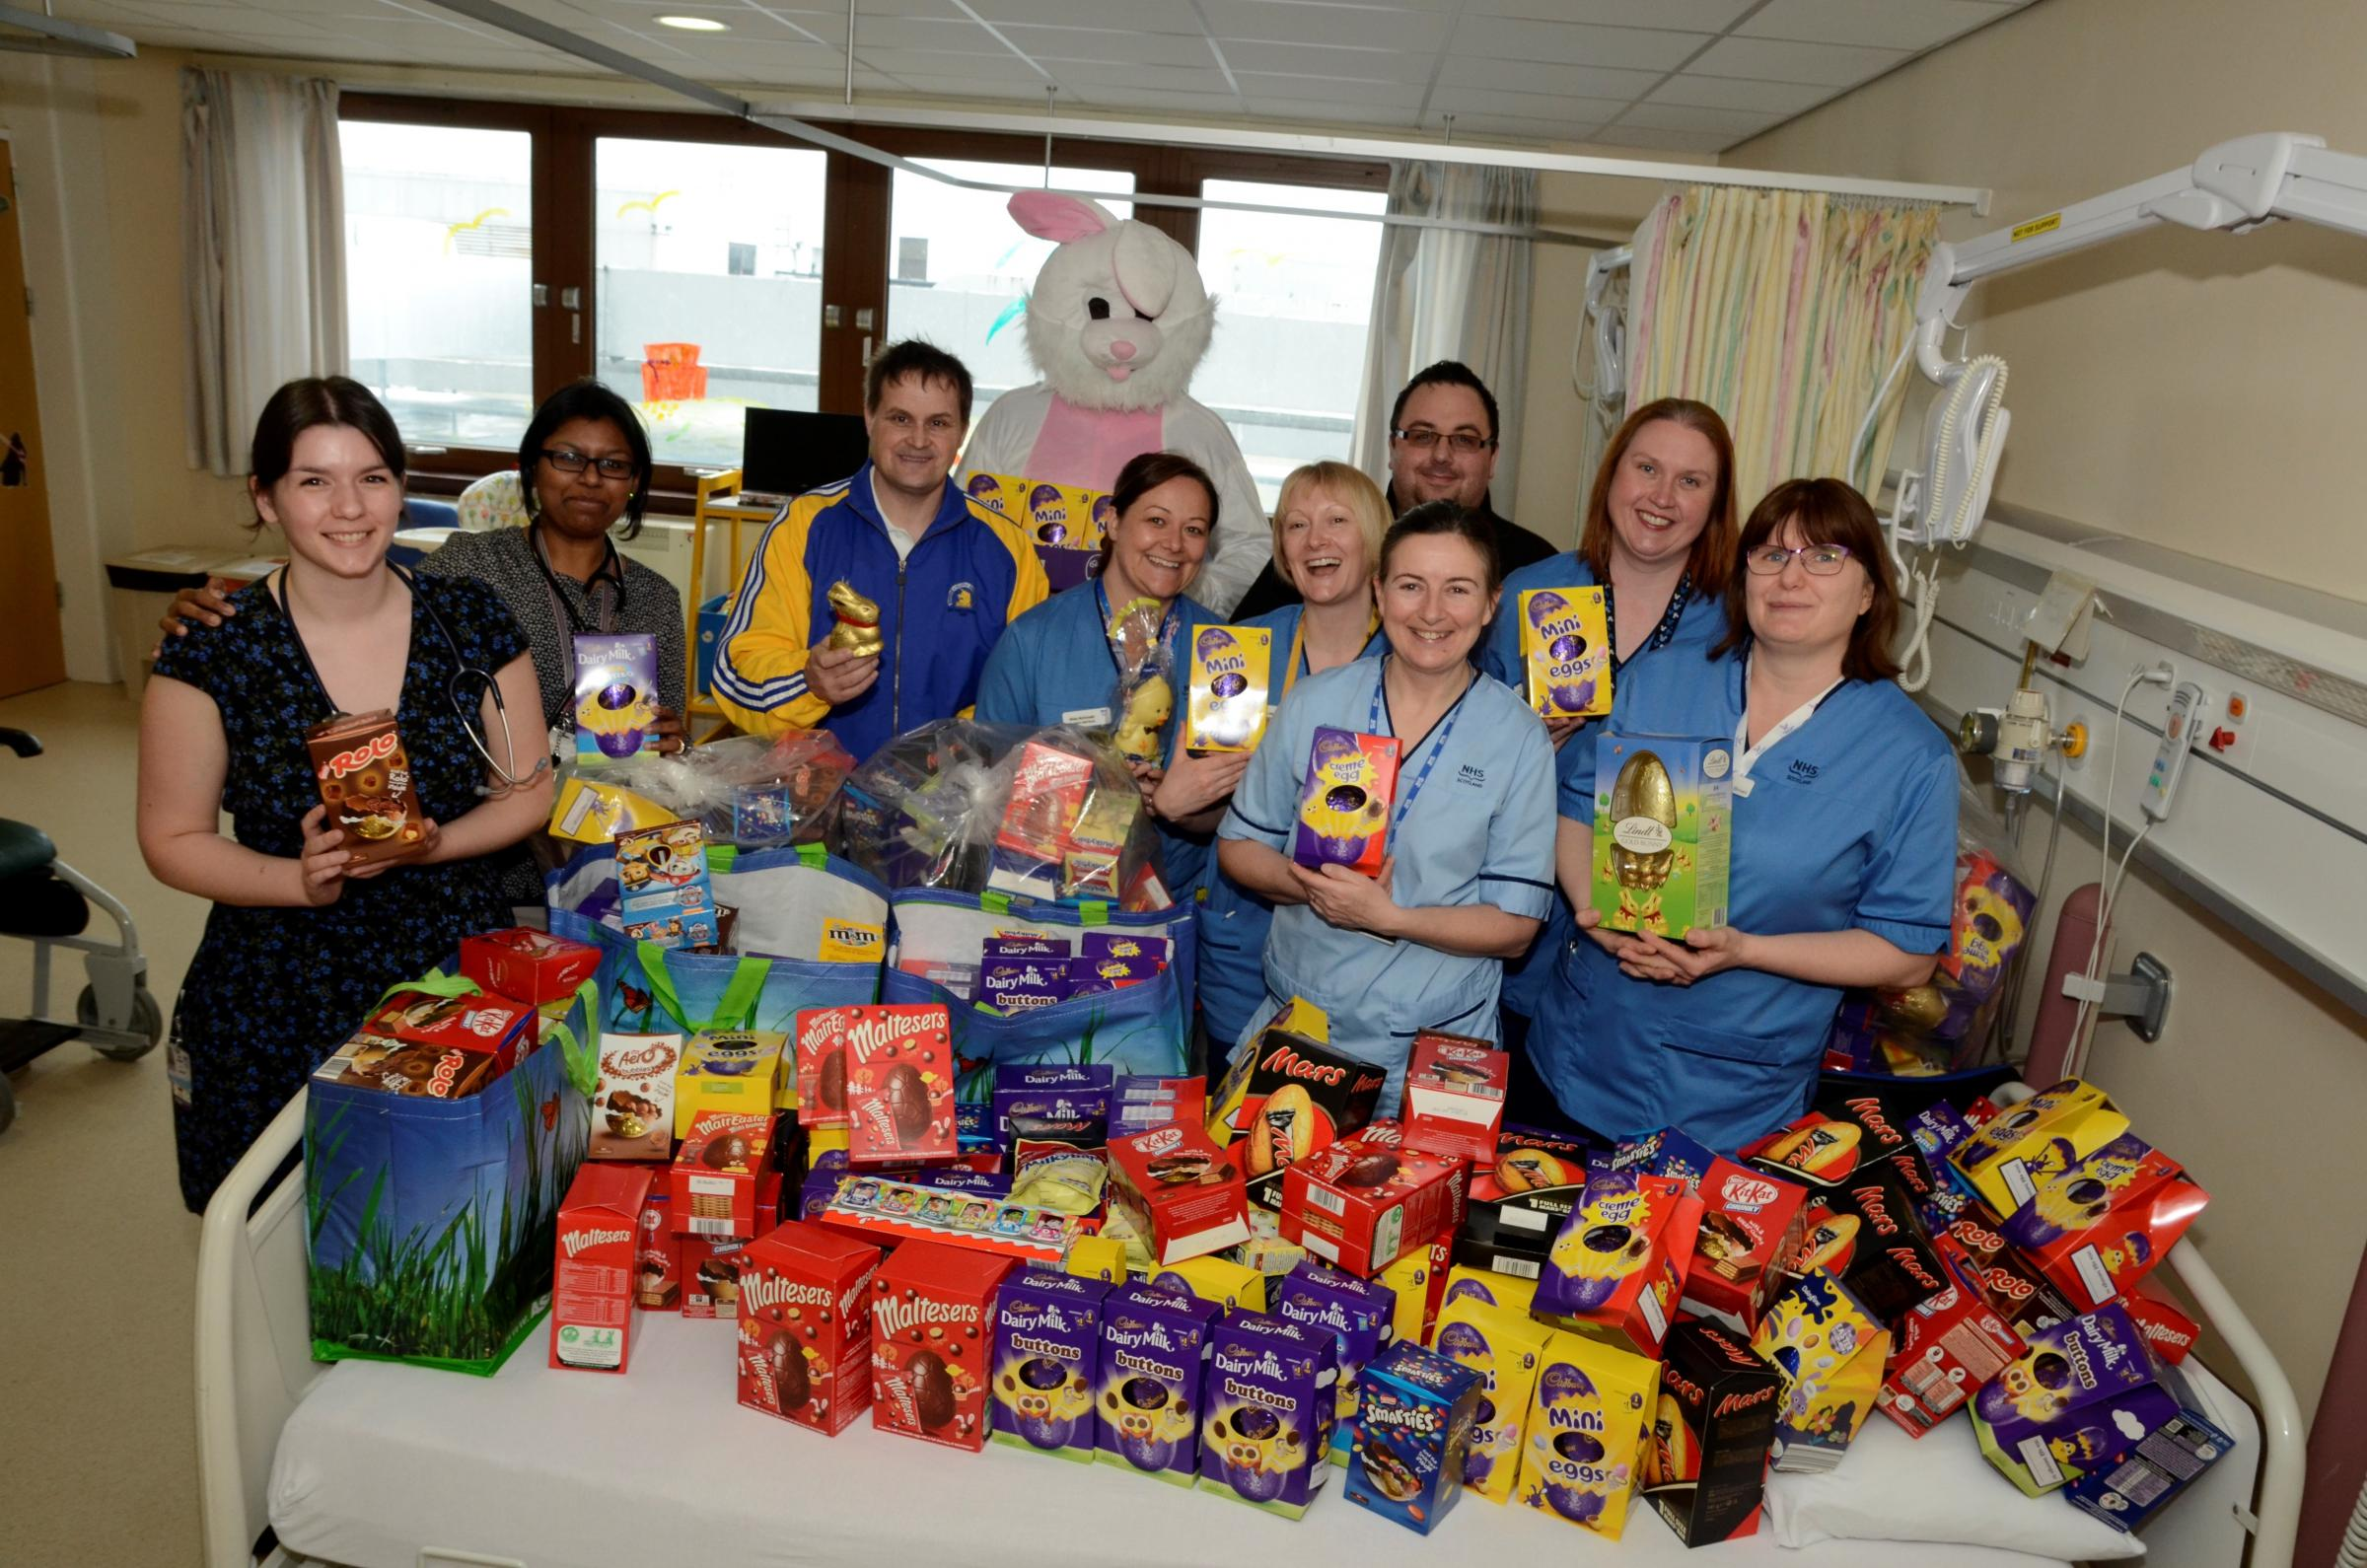 Kilwinning charity campaigner launches annual Easter egg appeal